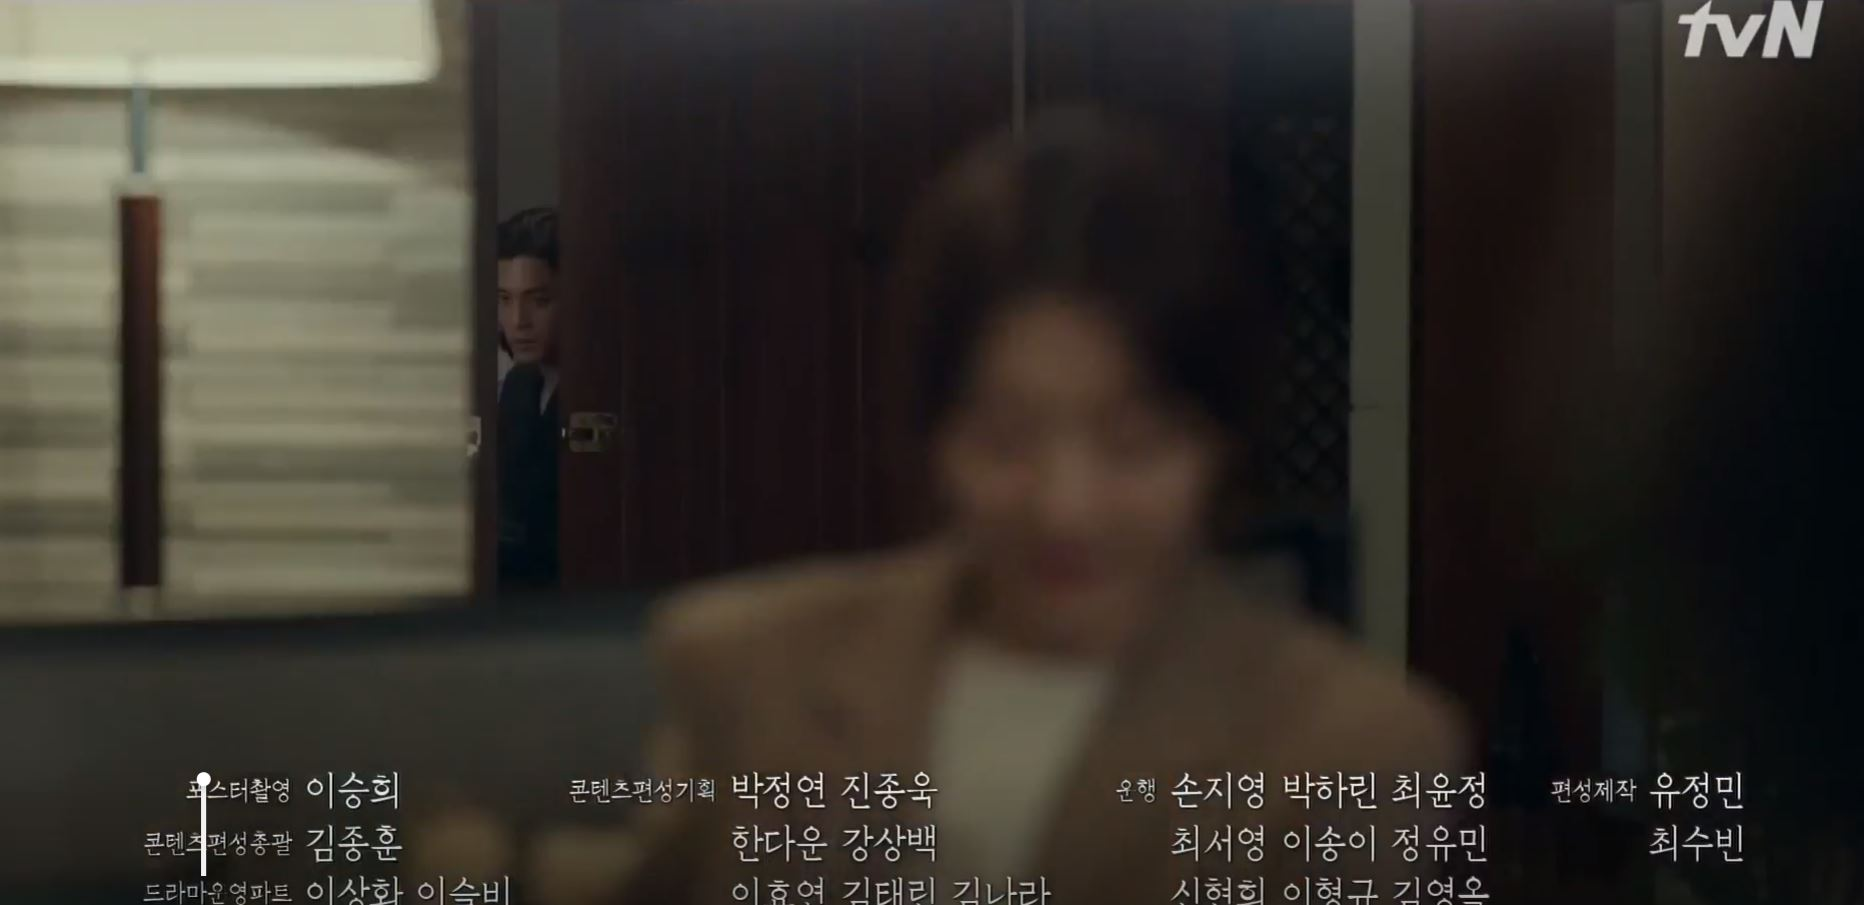 Flower Of Evil Episode 11 Preview - Who Is The Accomplice?